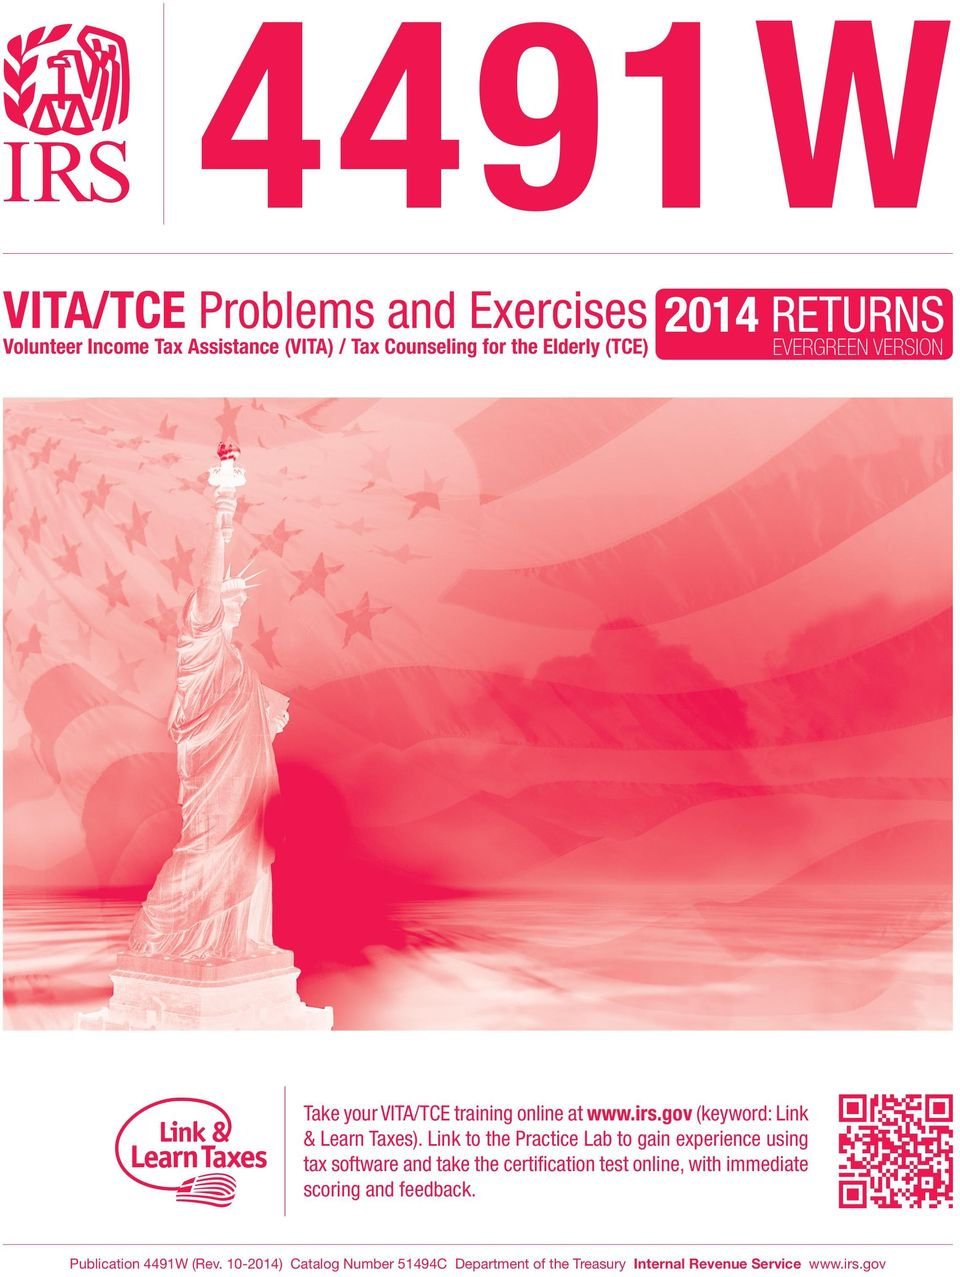 4491w Vitatce Problems And Exercises 2014 Returns Evergreen